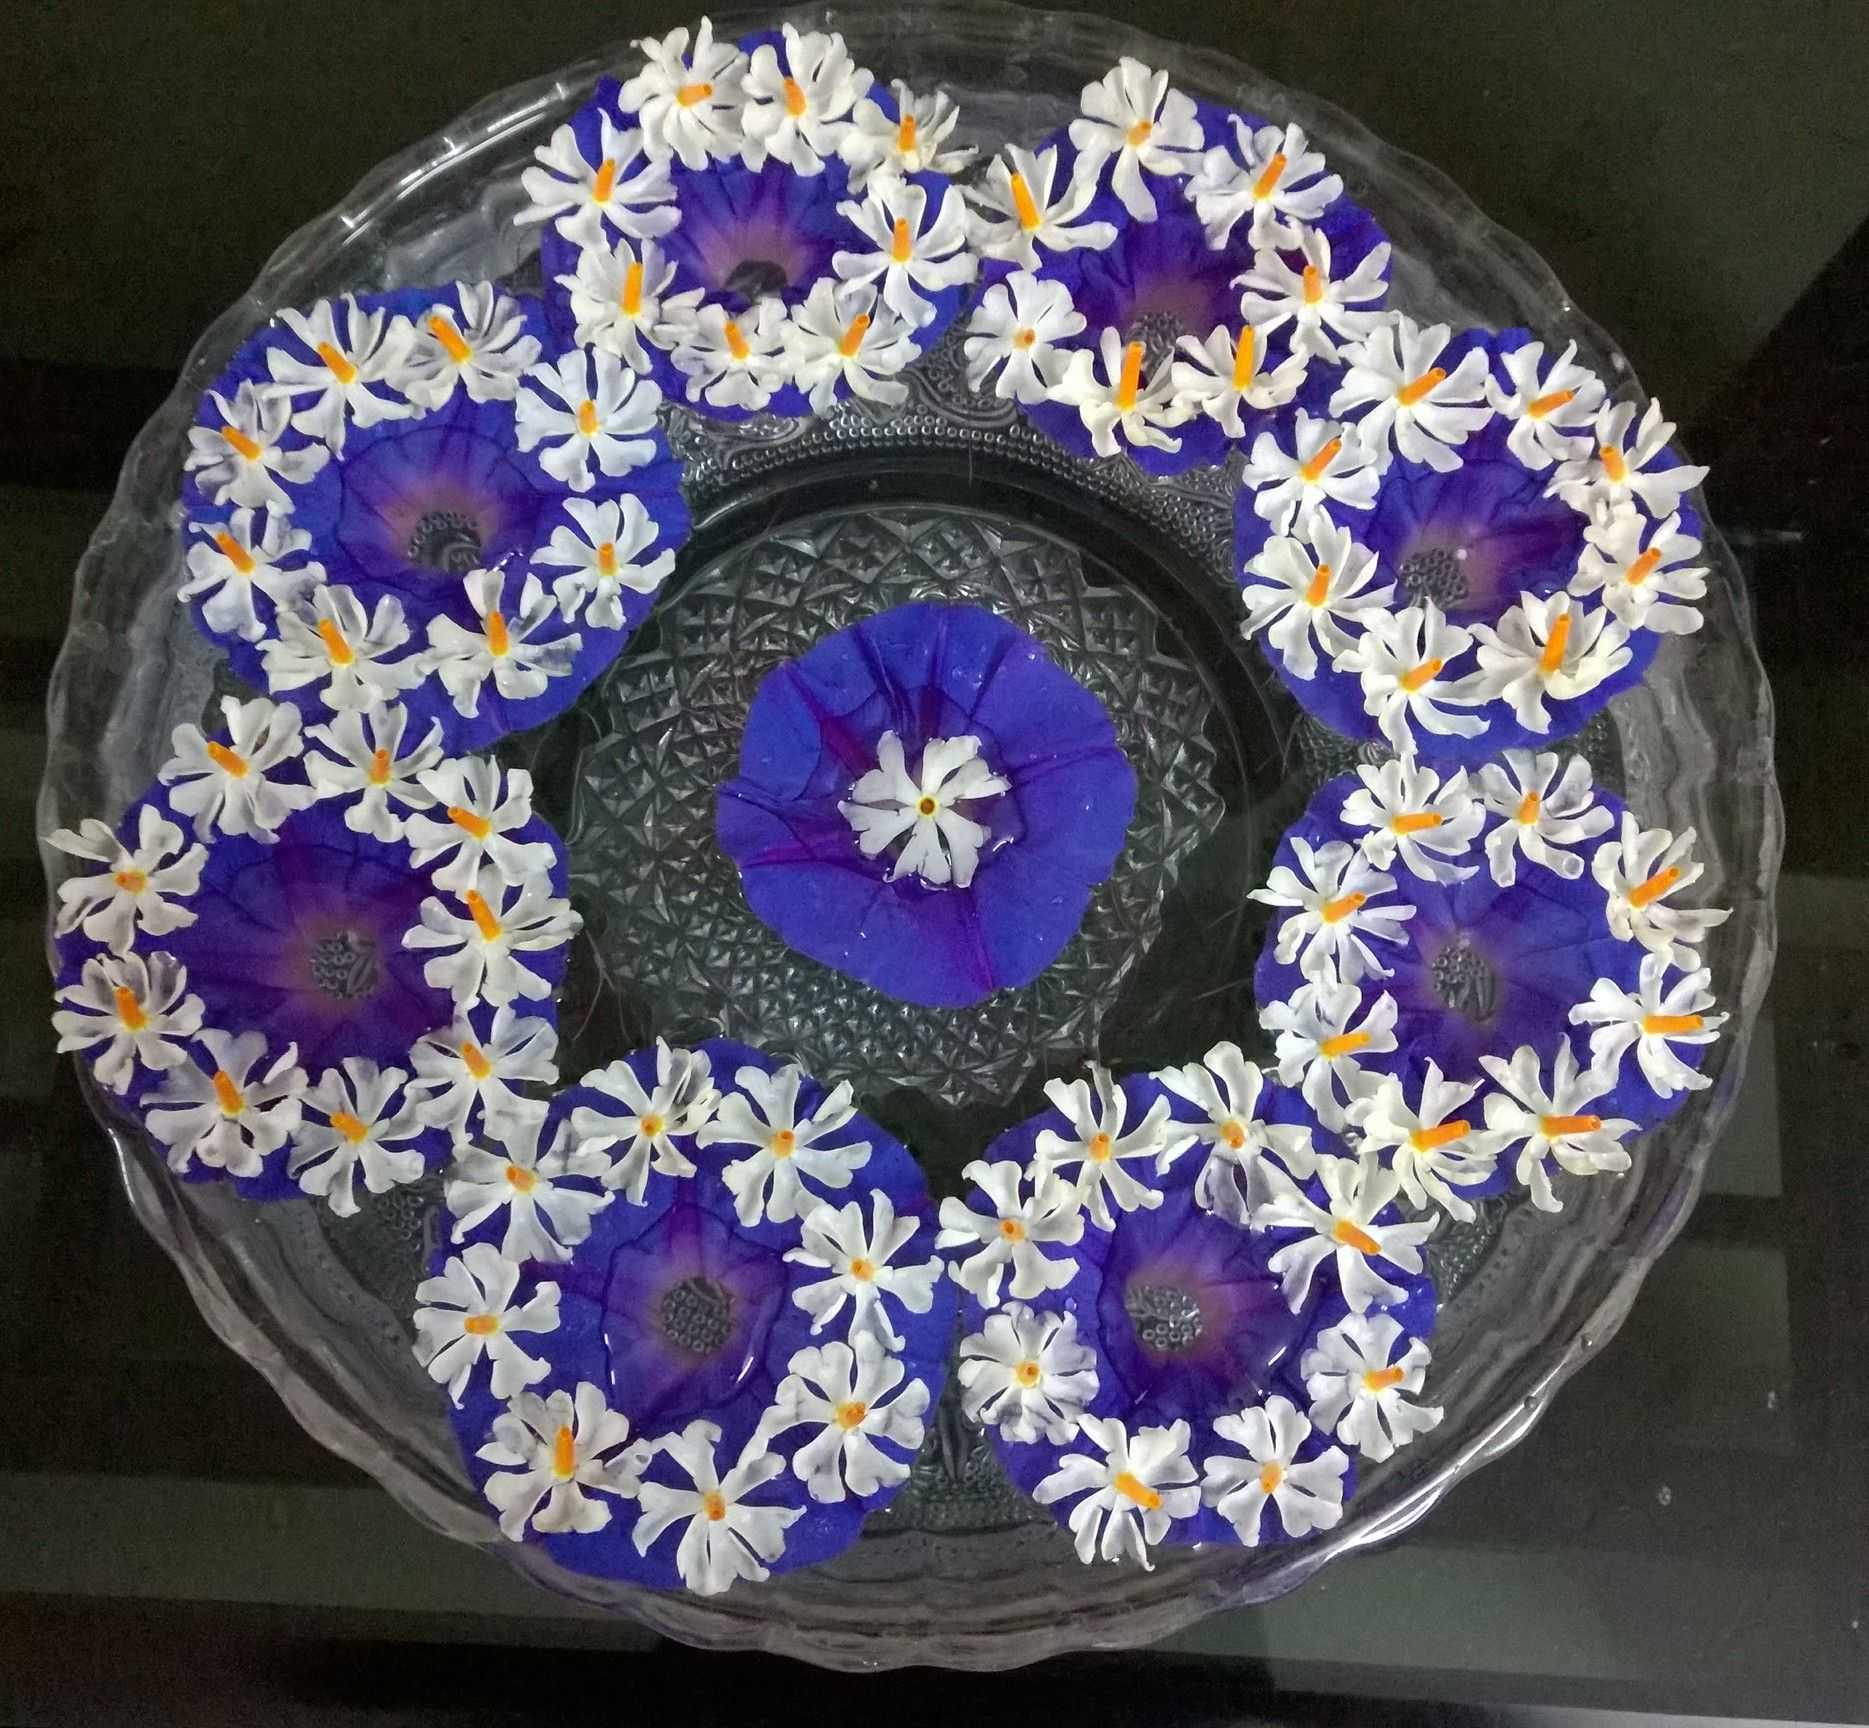 White parijata flowers arranged in small circle over